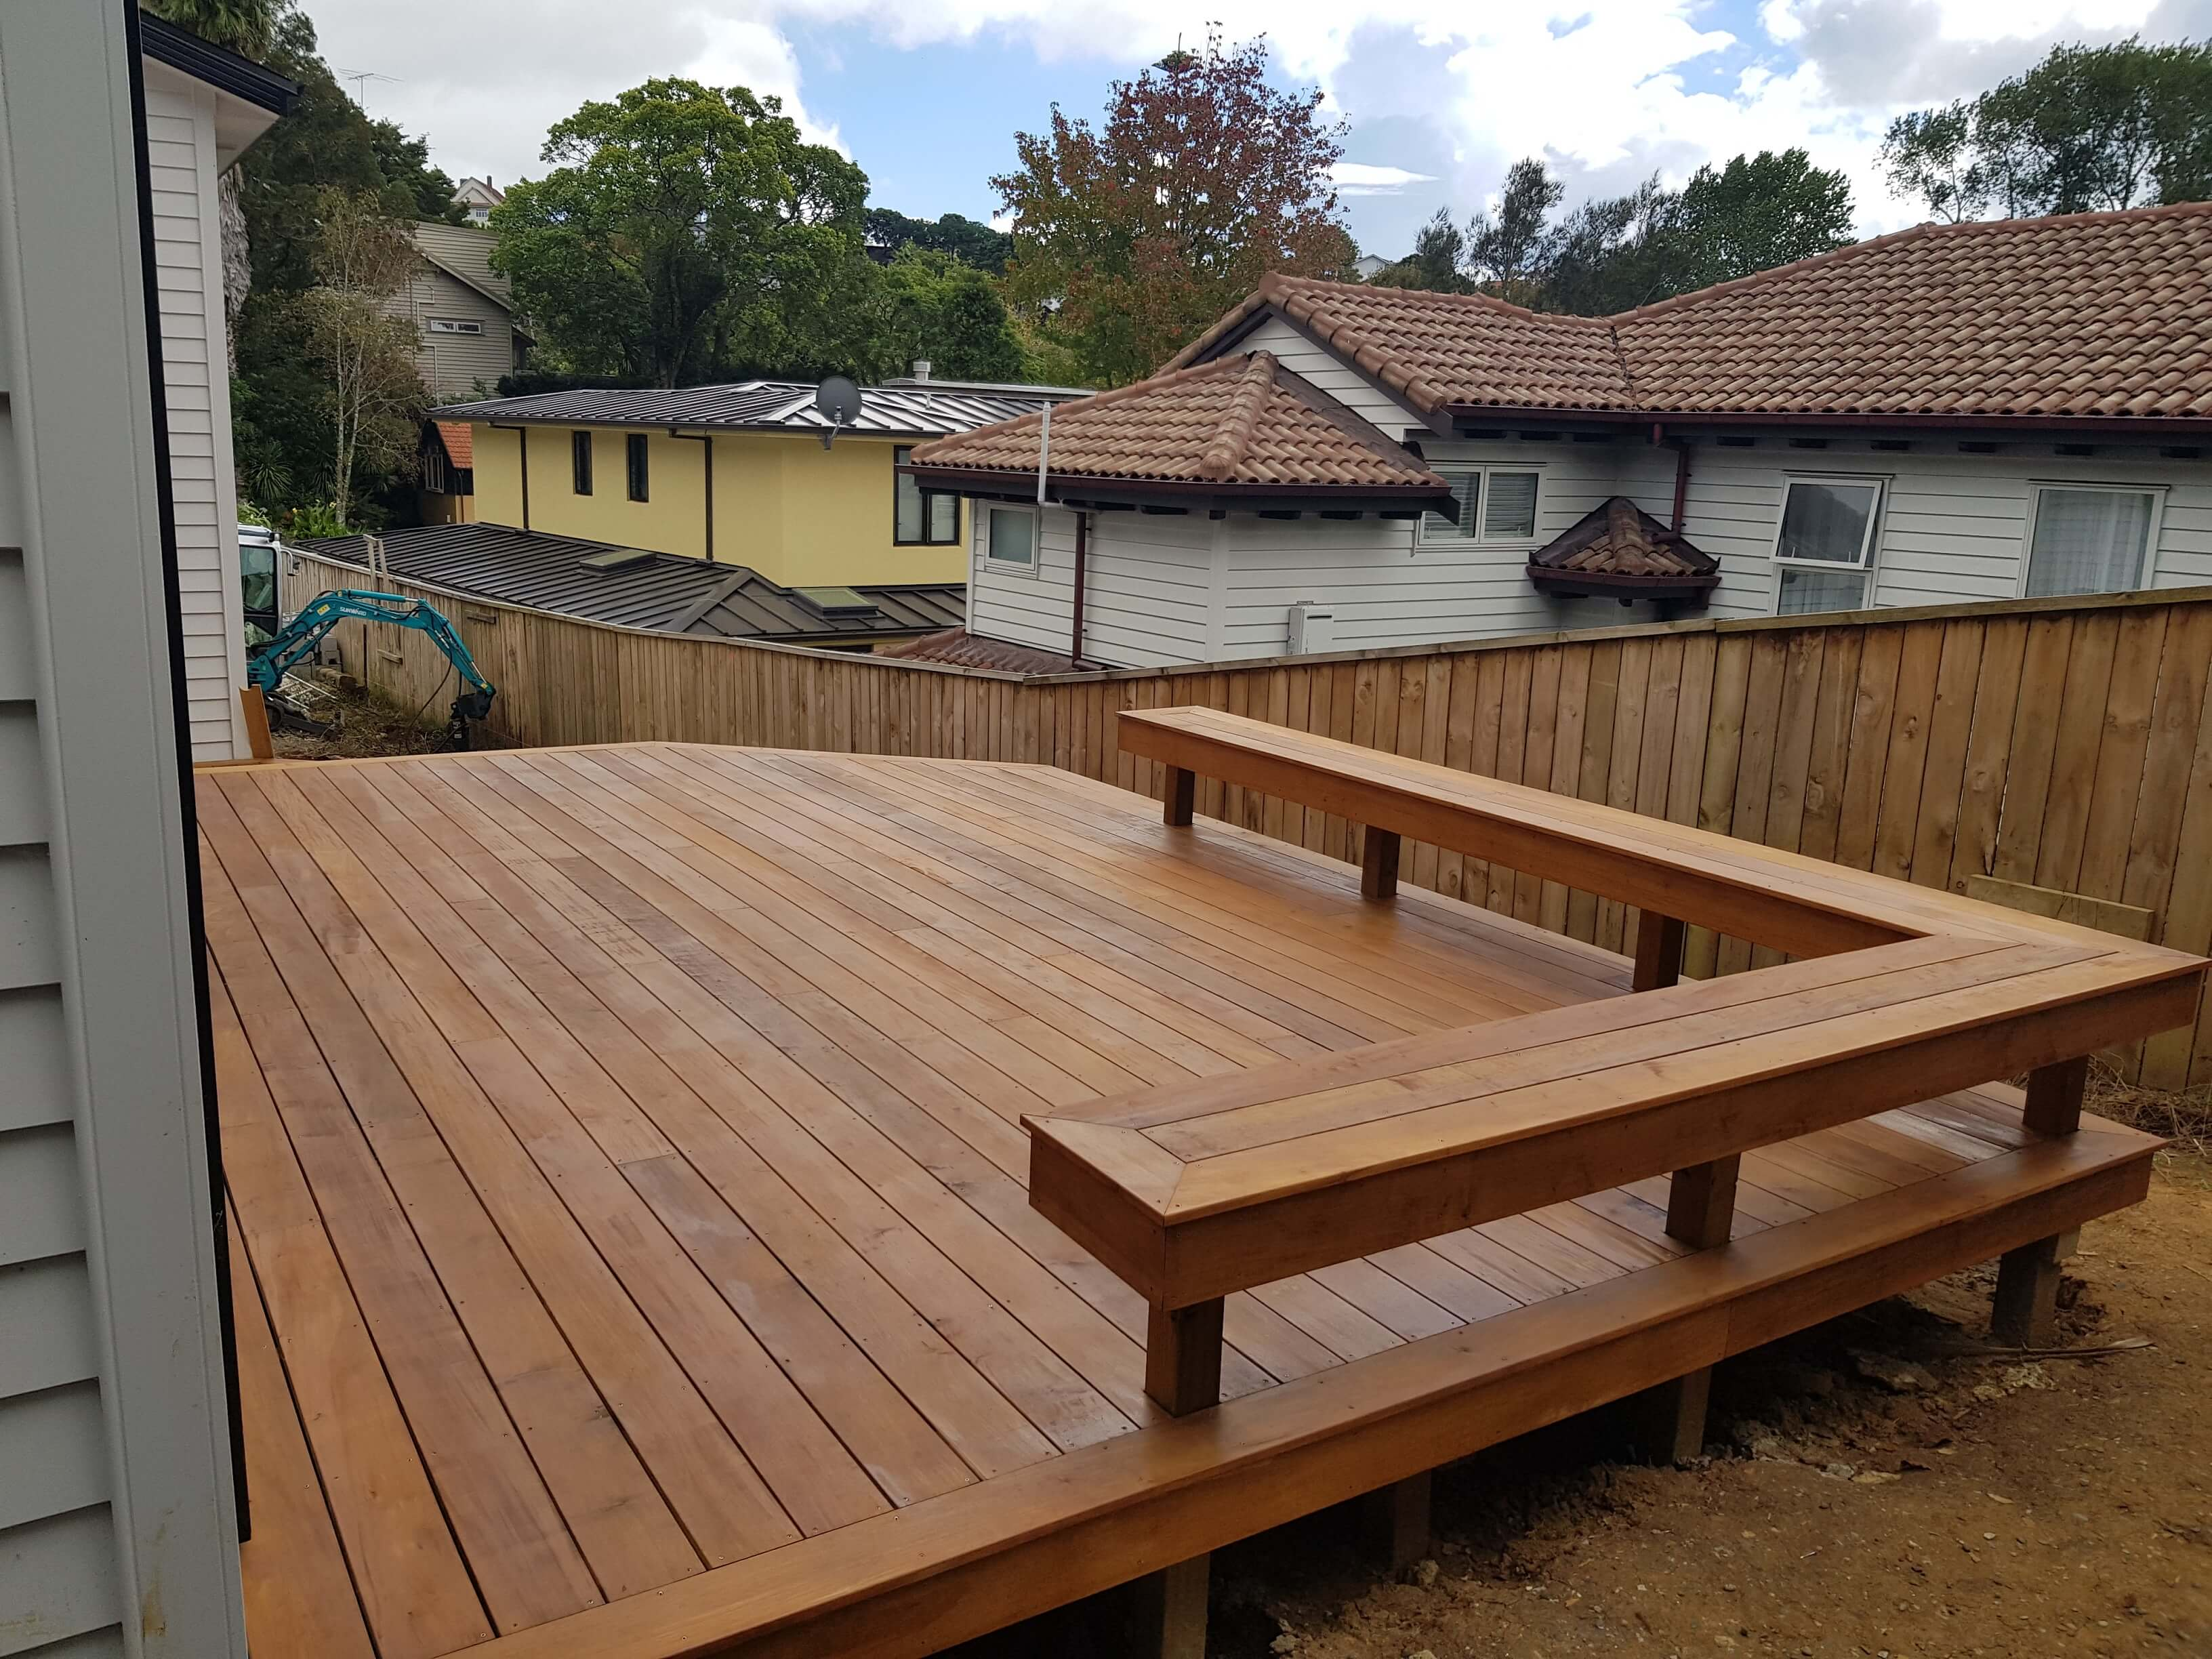 Deck with in built bench seat